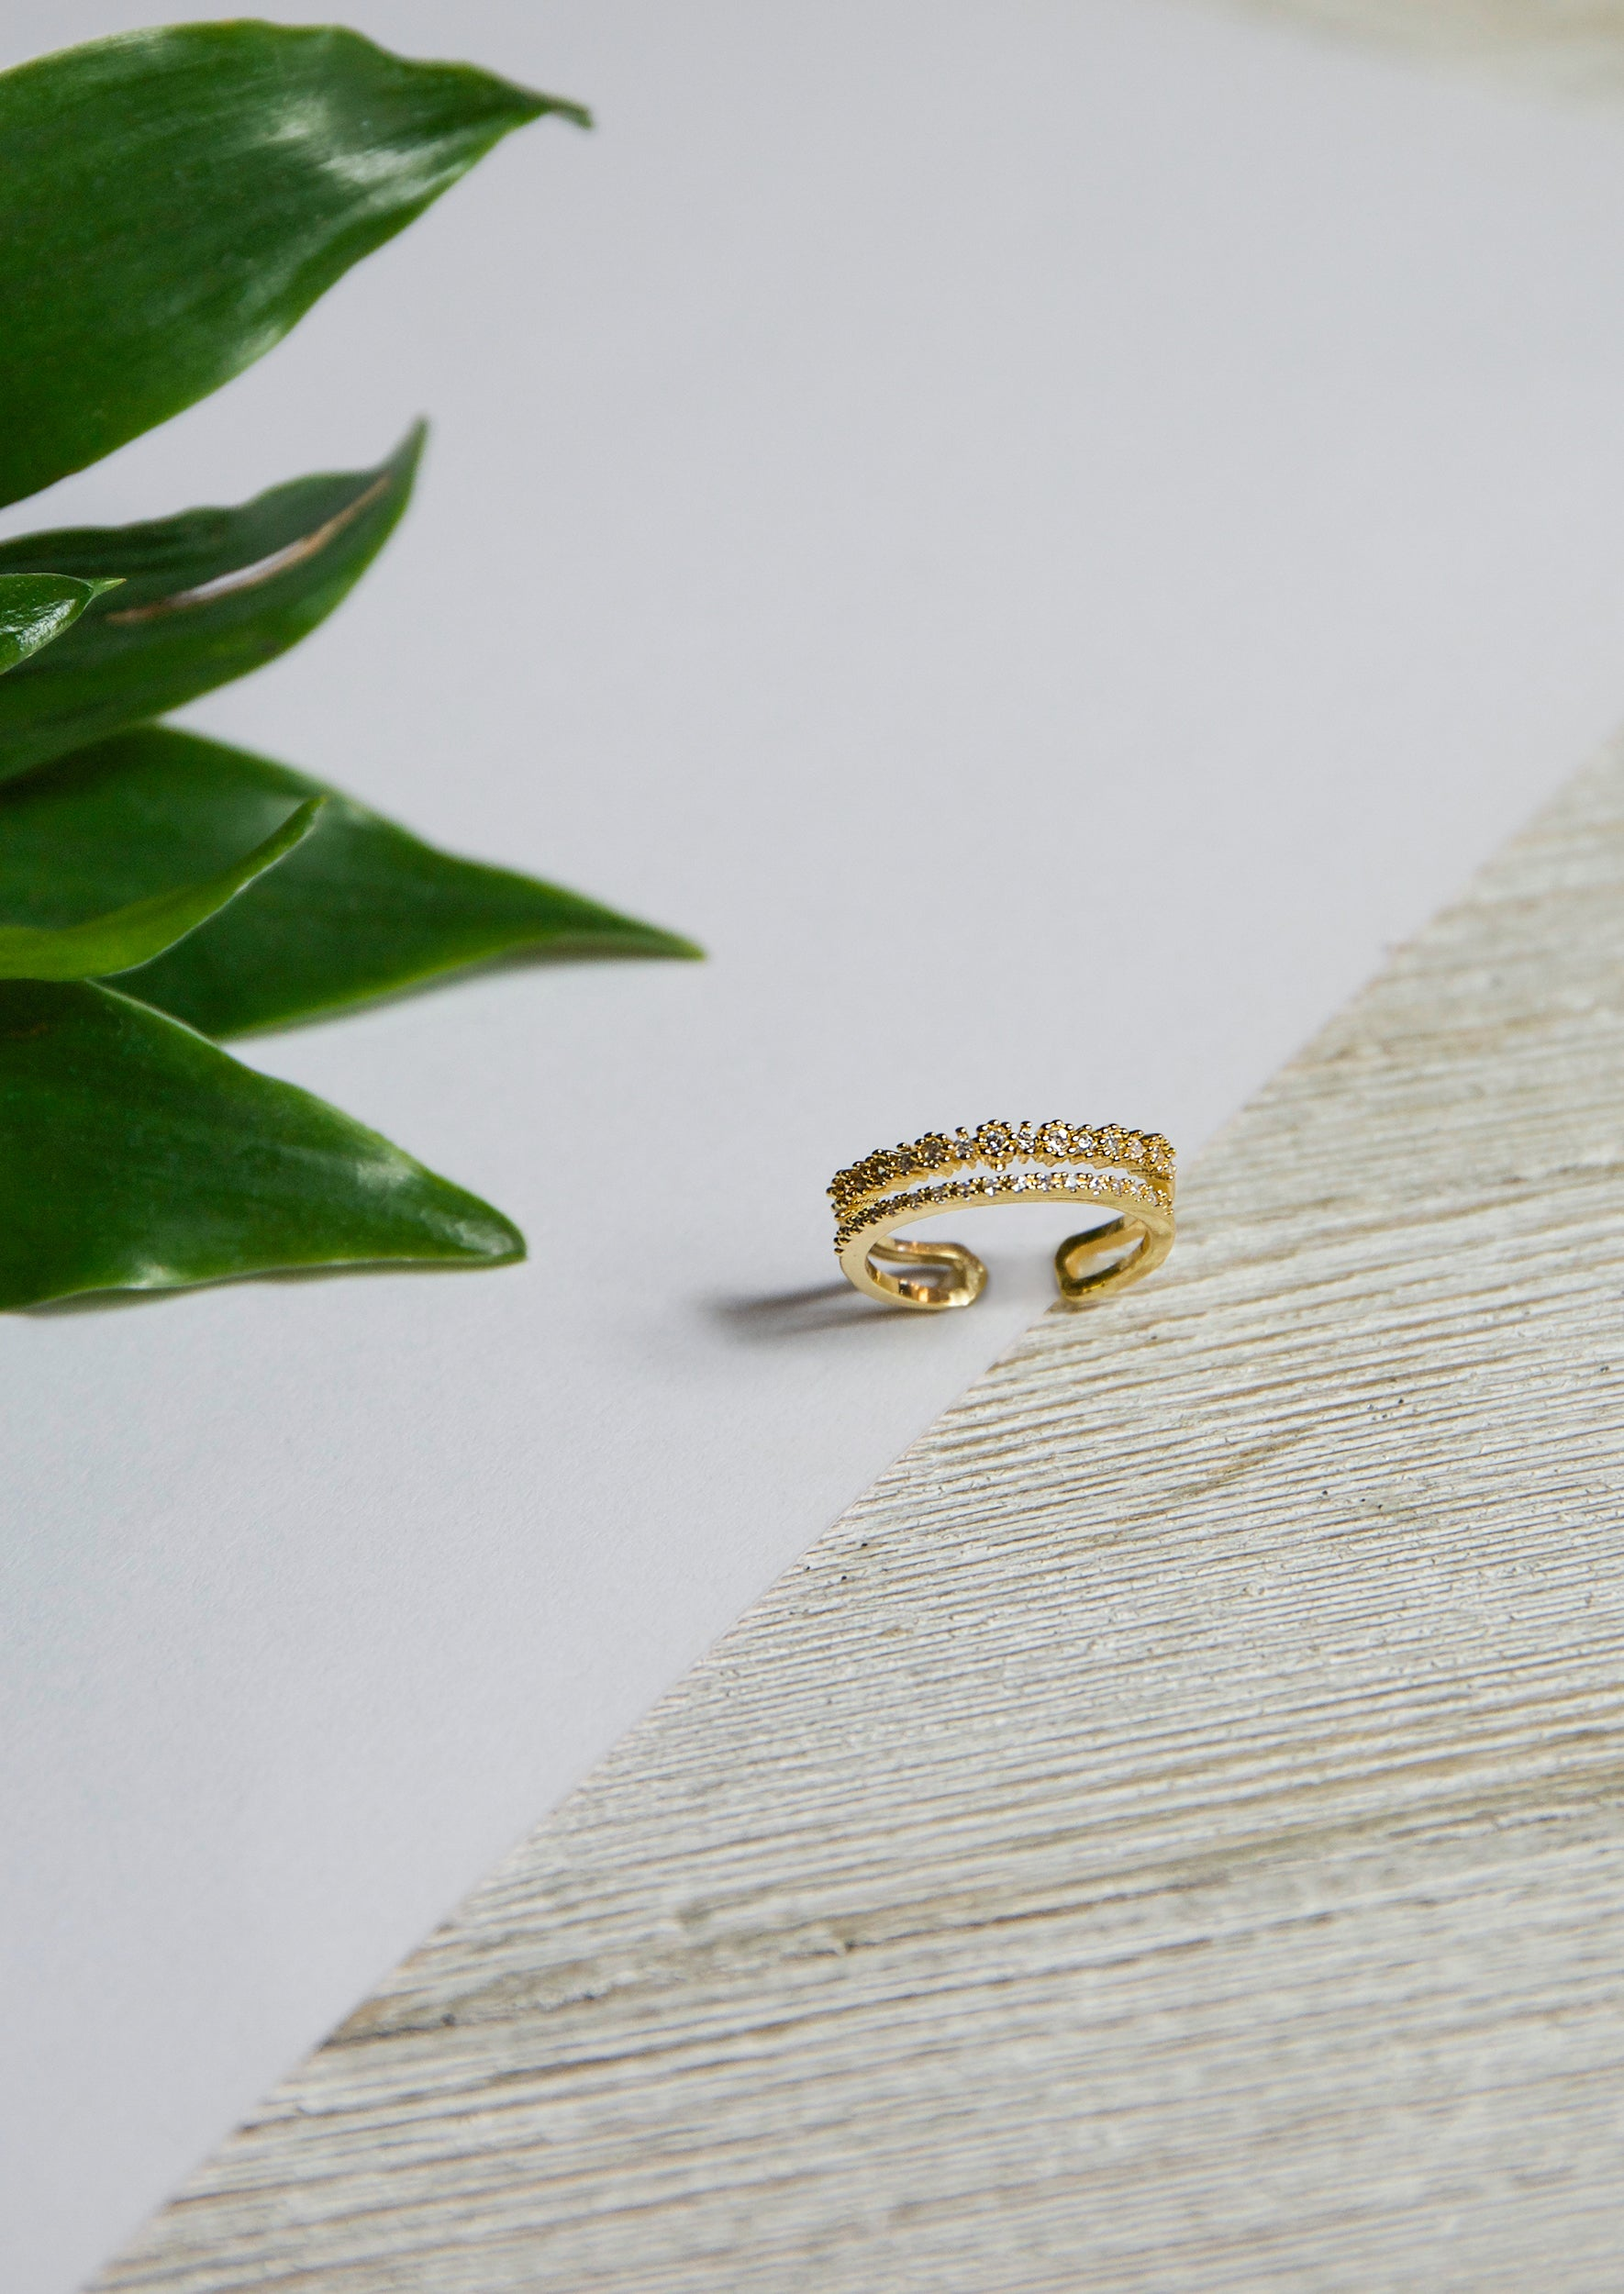 Daisy Chain Ring - Jules Smith - 14K Gold Plated - Boho Jewelry